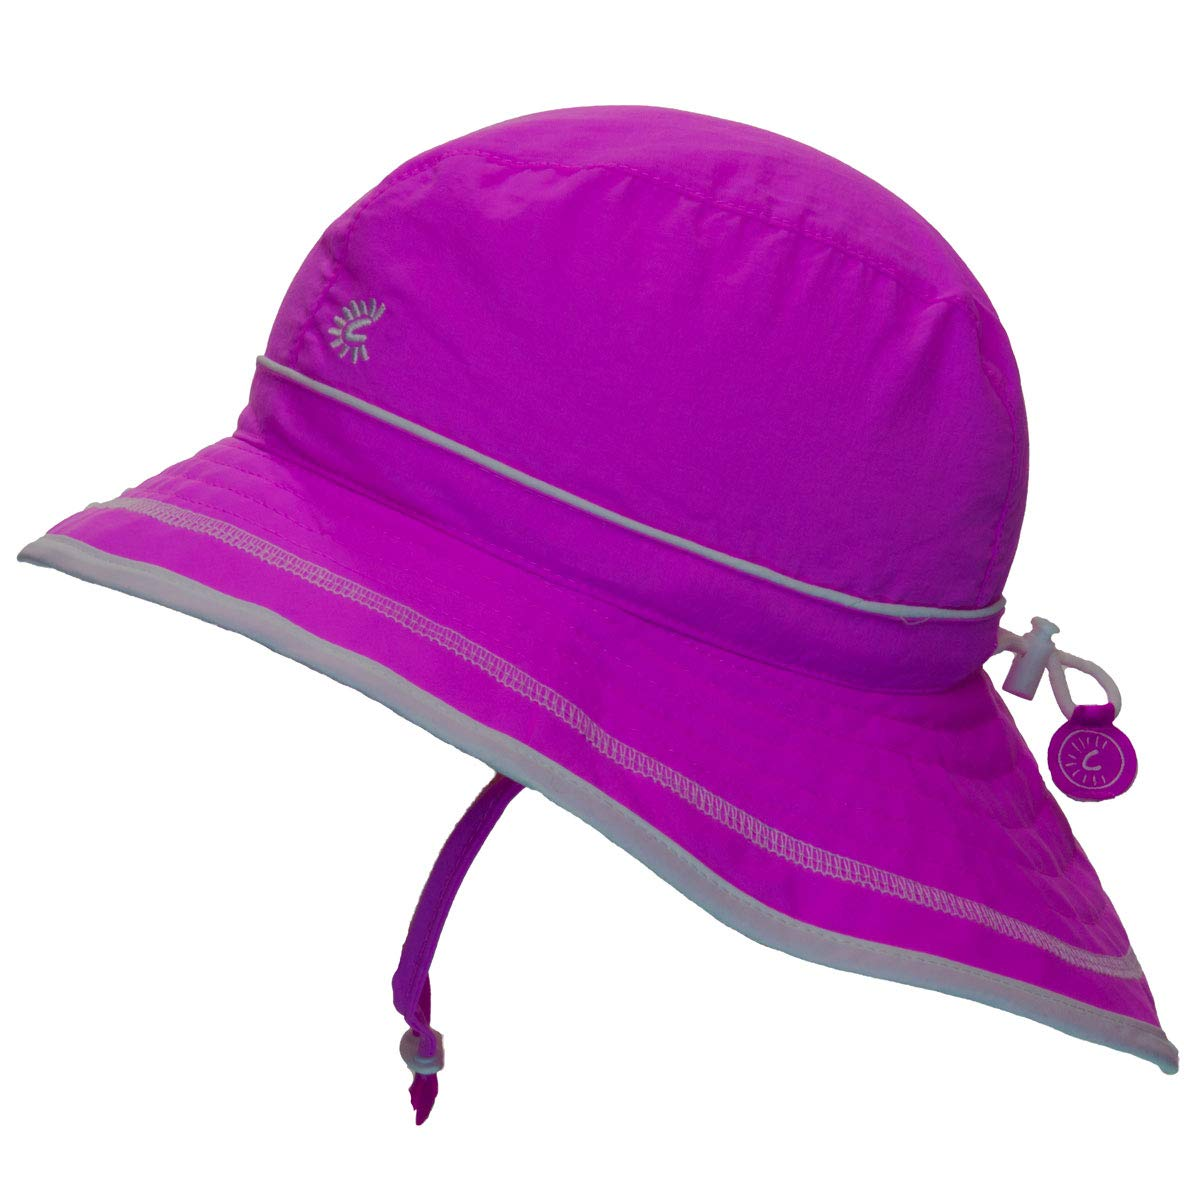 b54e9a36c4c5b Calikids Girls Summer Hat  Amazon.ca  Clothing   Accessories